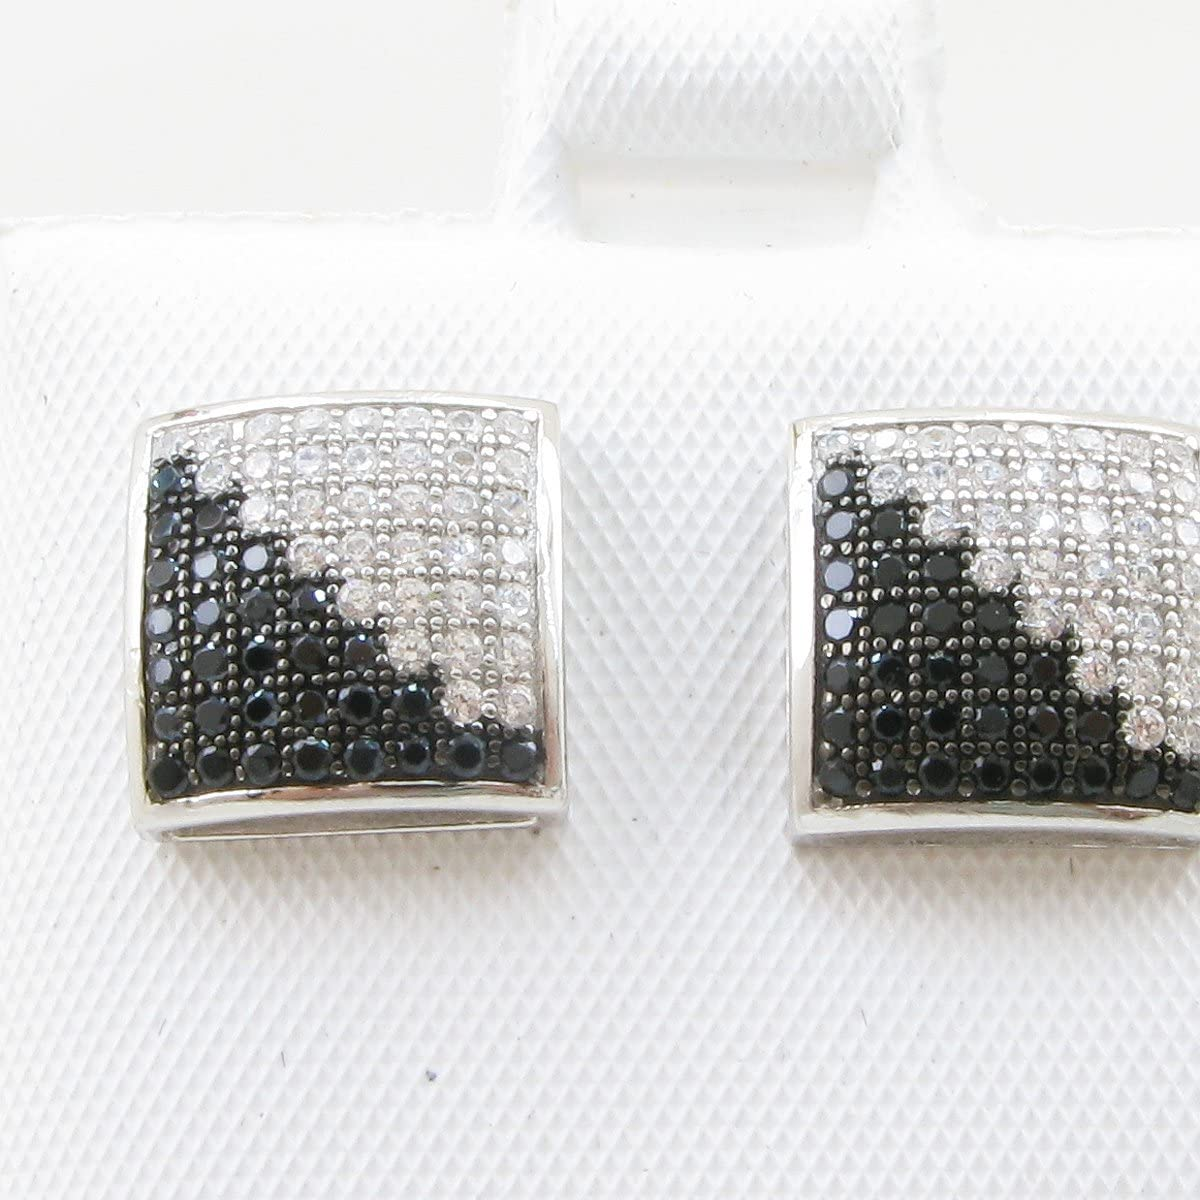 Mens .925 sterling silver White and black 8 row square earring MLCZ100 5mm thick and 10mm wide Size